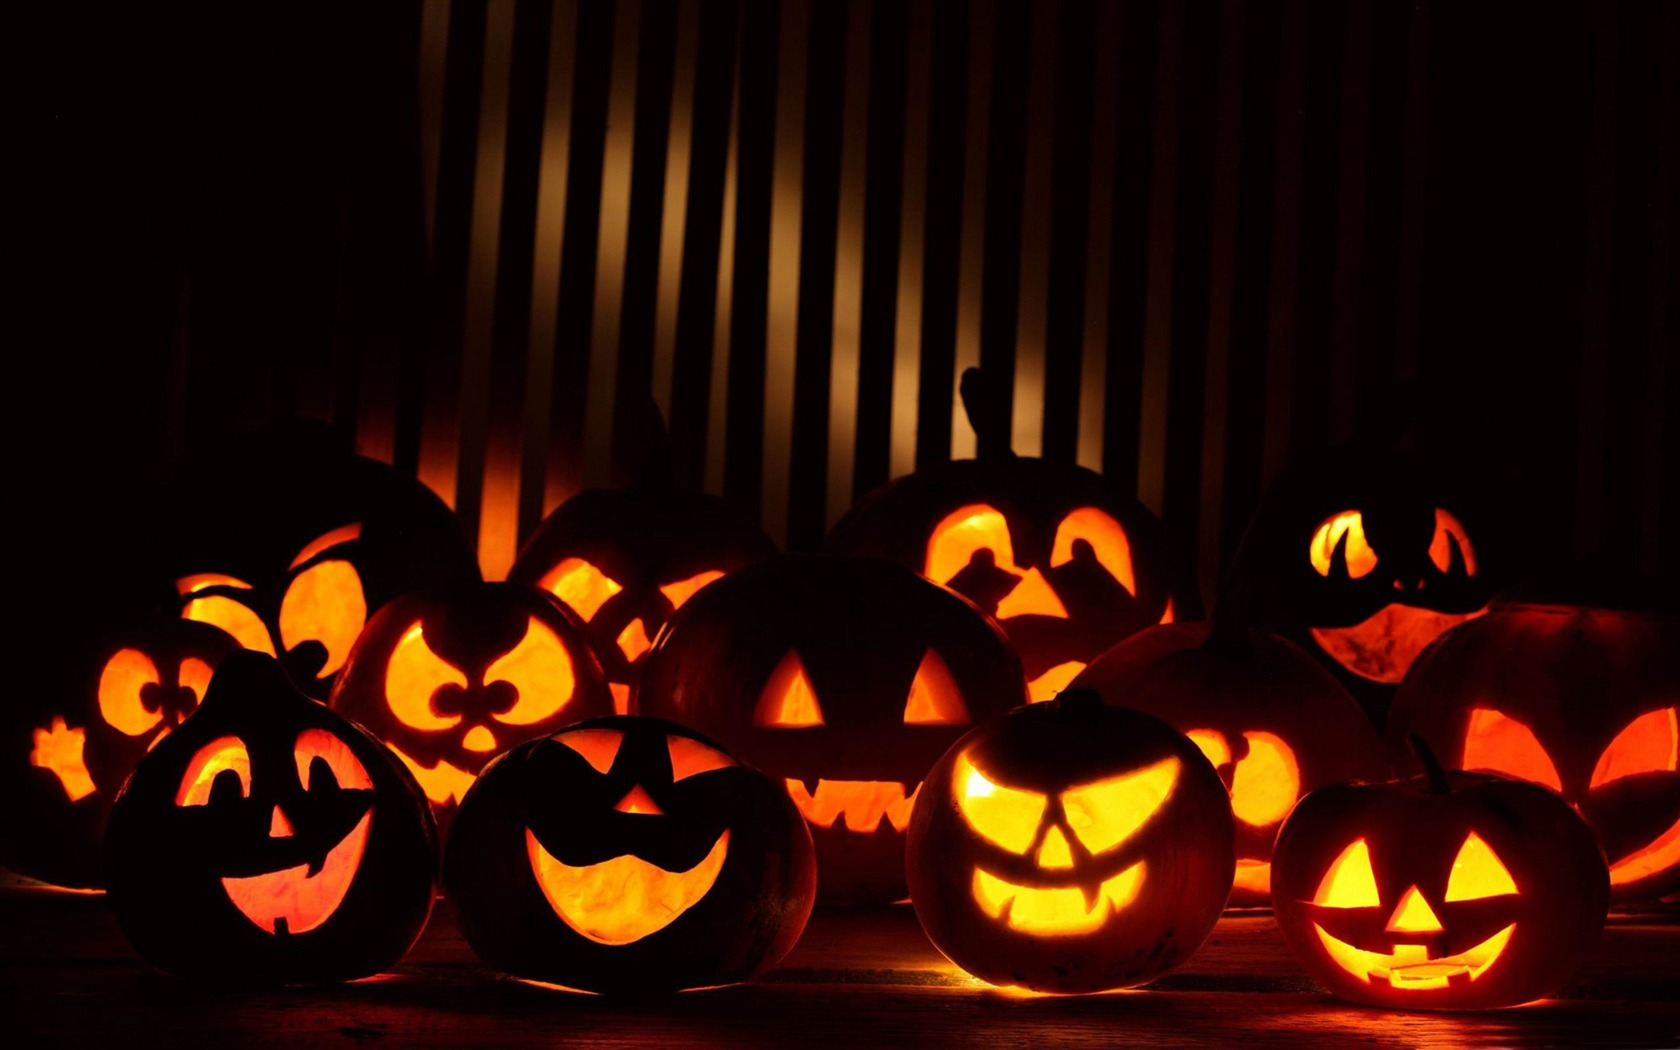 Cute Happy Valentines Day Wallpaper 2015 Jack Lantern 2012 Happy Halloween Theme Wallpapers Preview